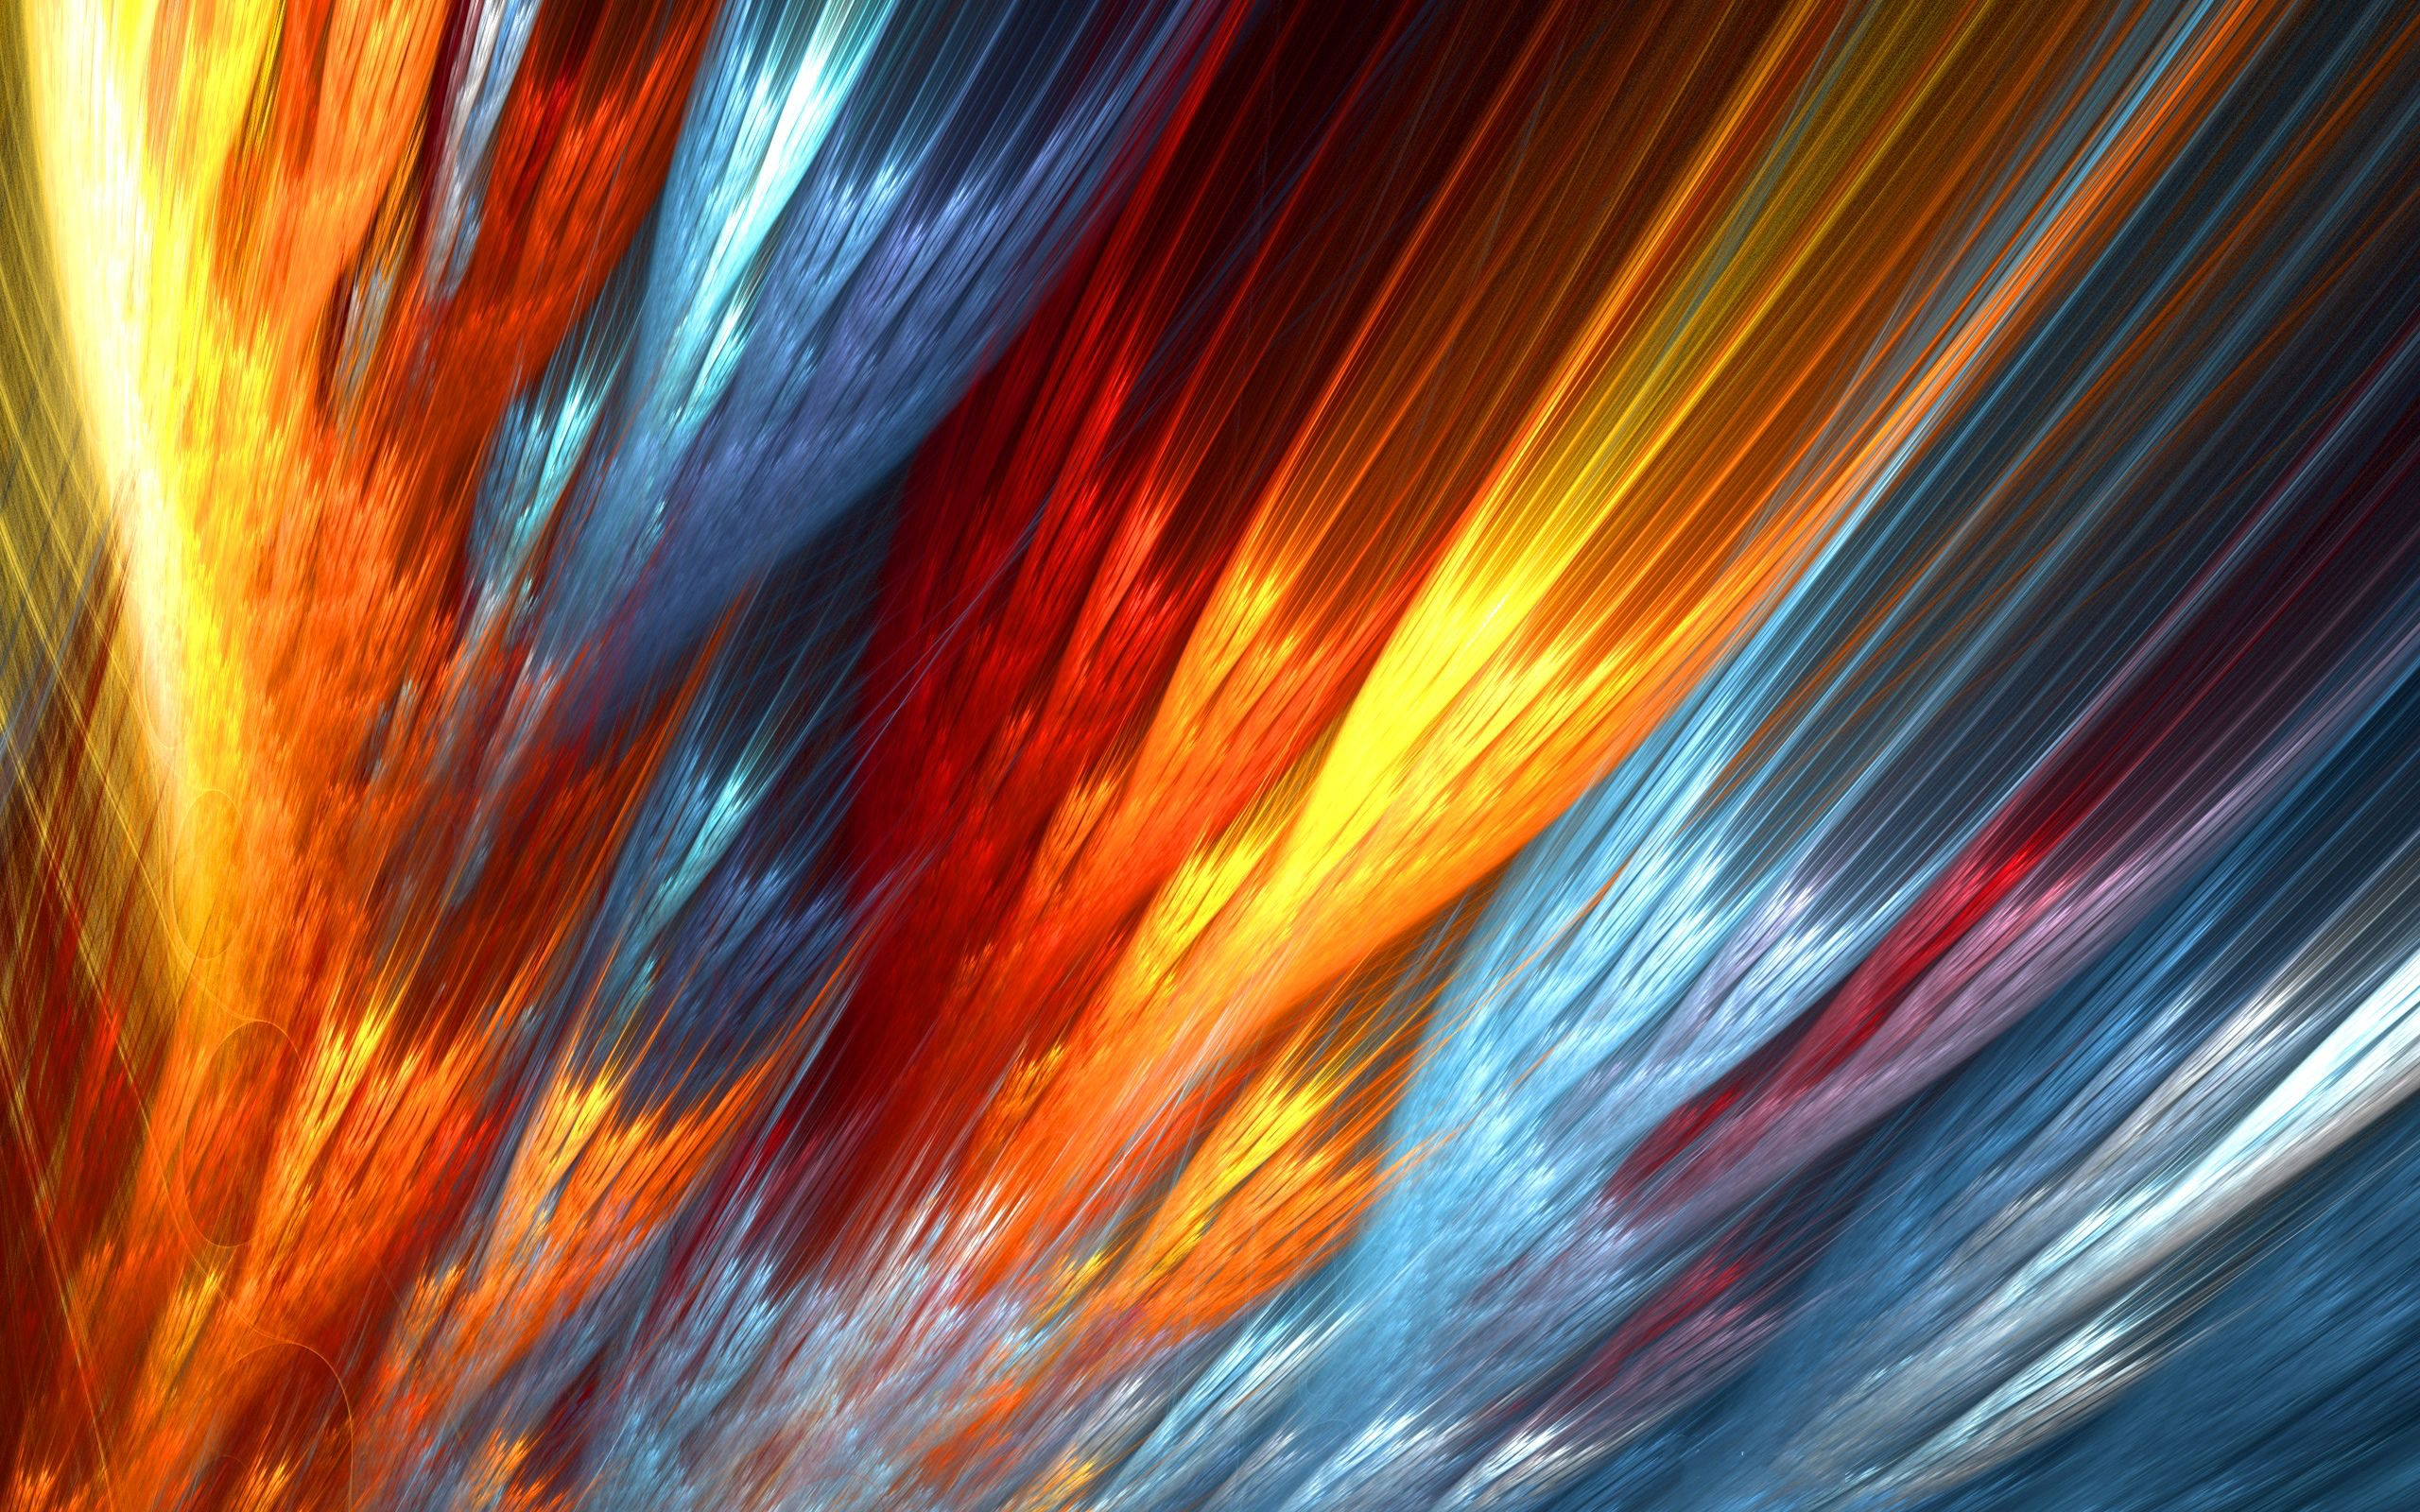 abstract colorful fire wallpapers - http://hdwallpapersf